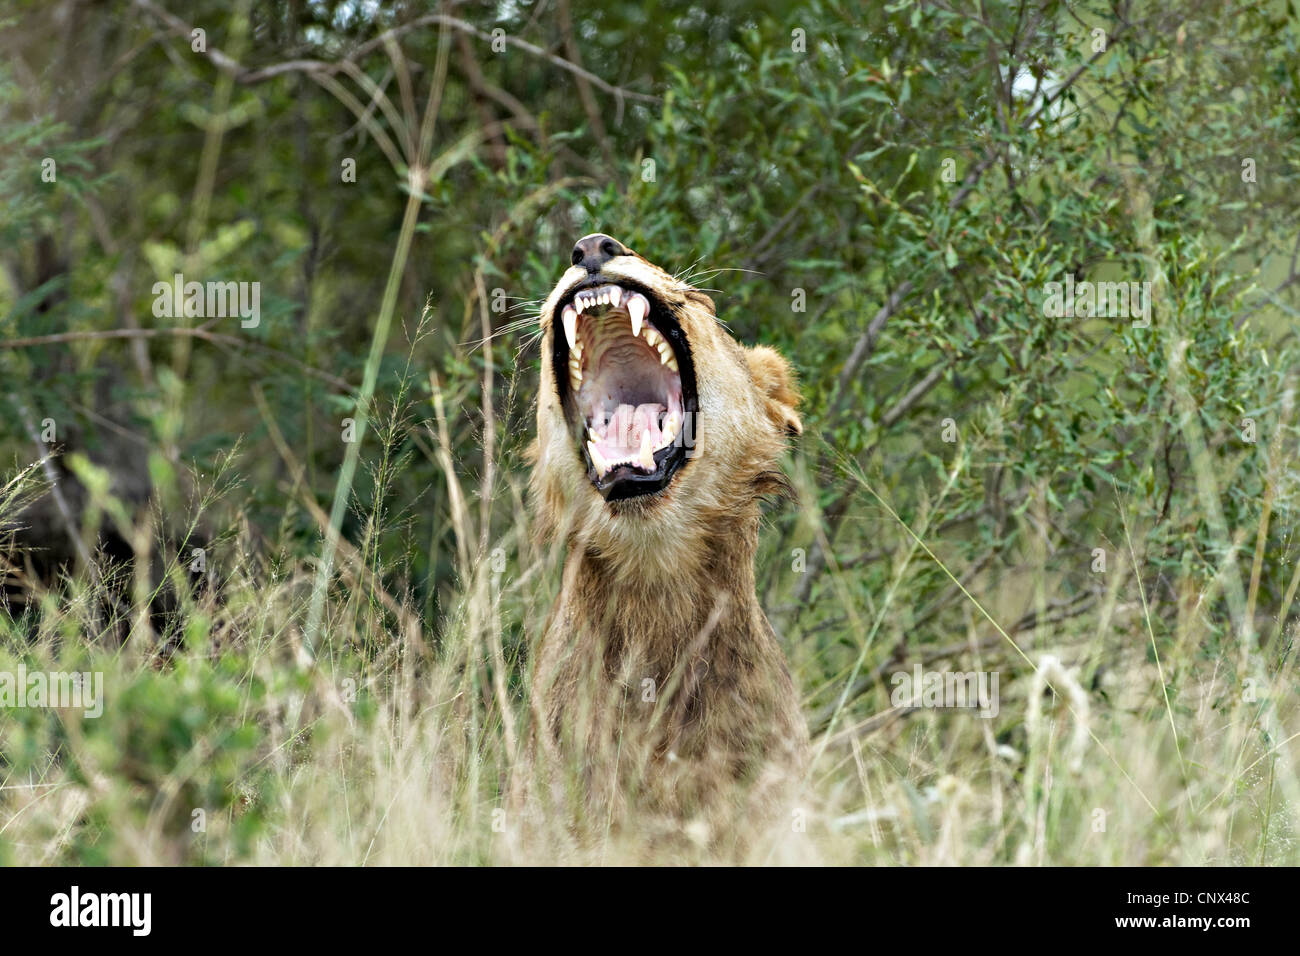 African Lioness ( Panthera leo ) in long grass, Kruger National Park, South Africa - Stock Image